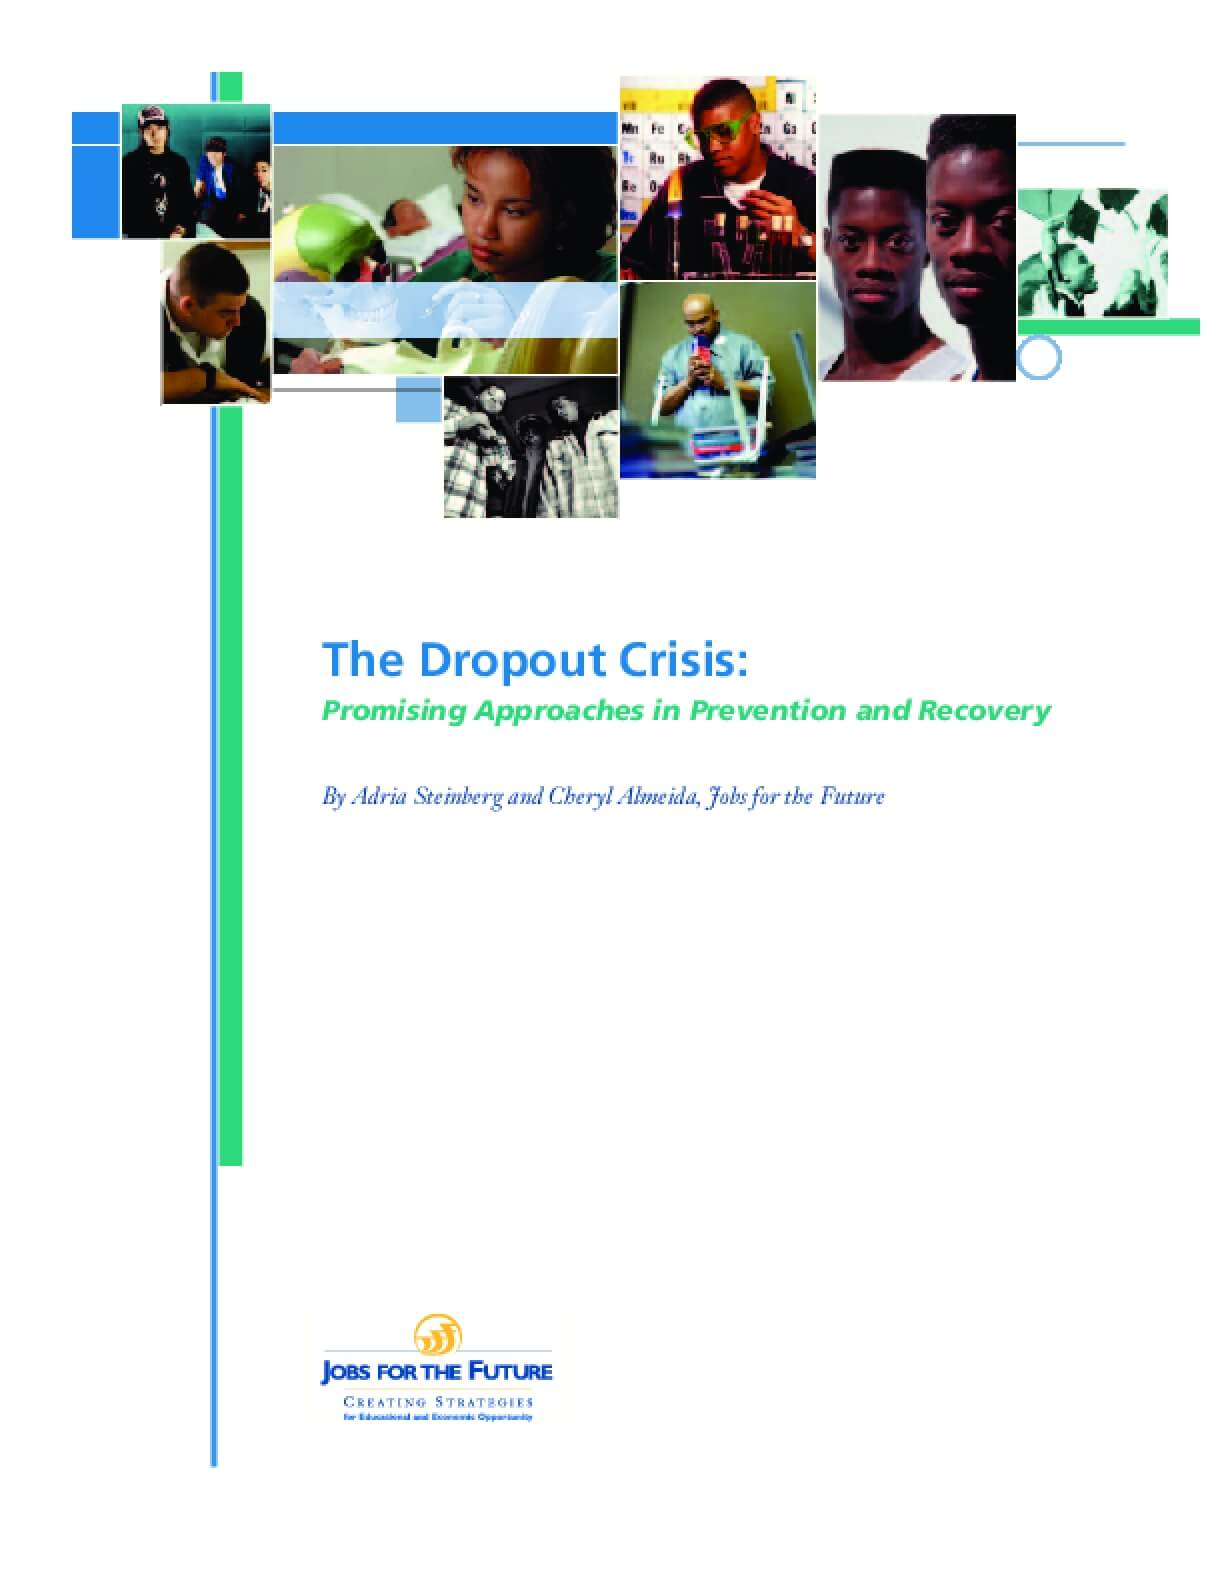 The Dropout Crisis: Promising Approaches in Prevention and Recovery